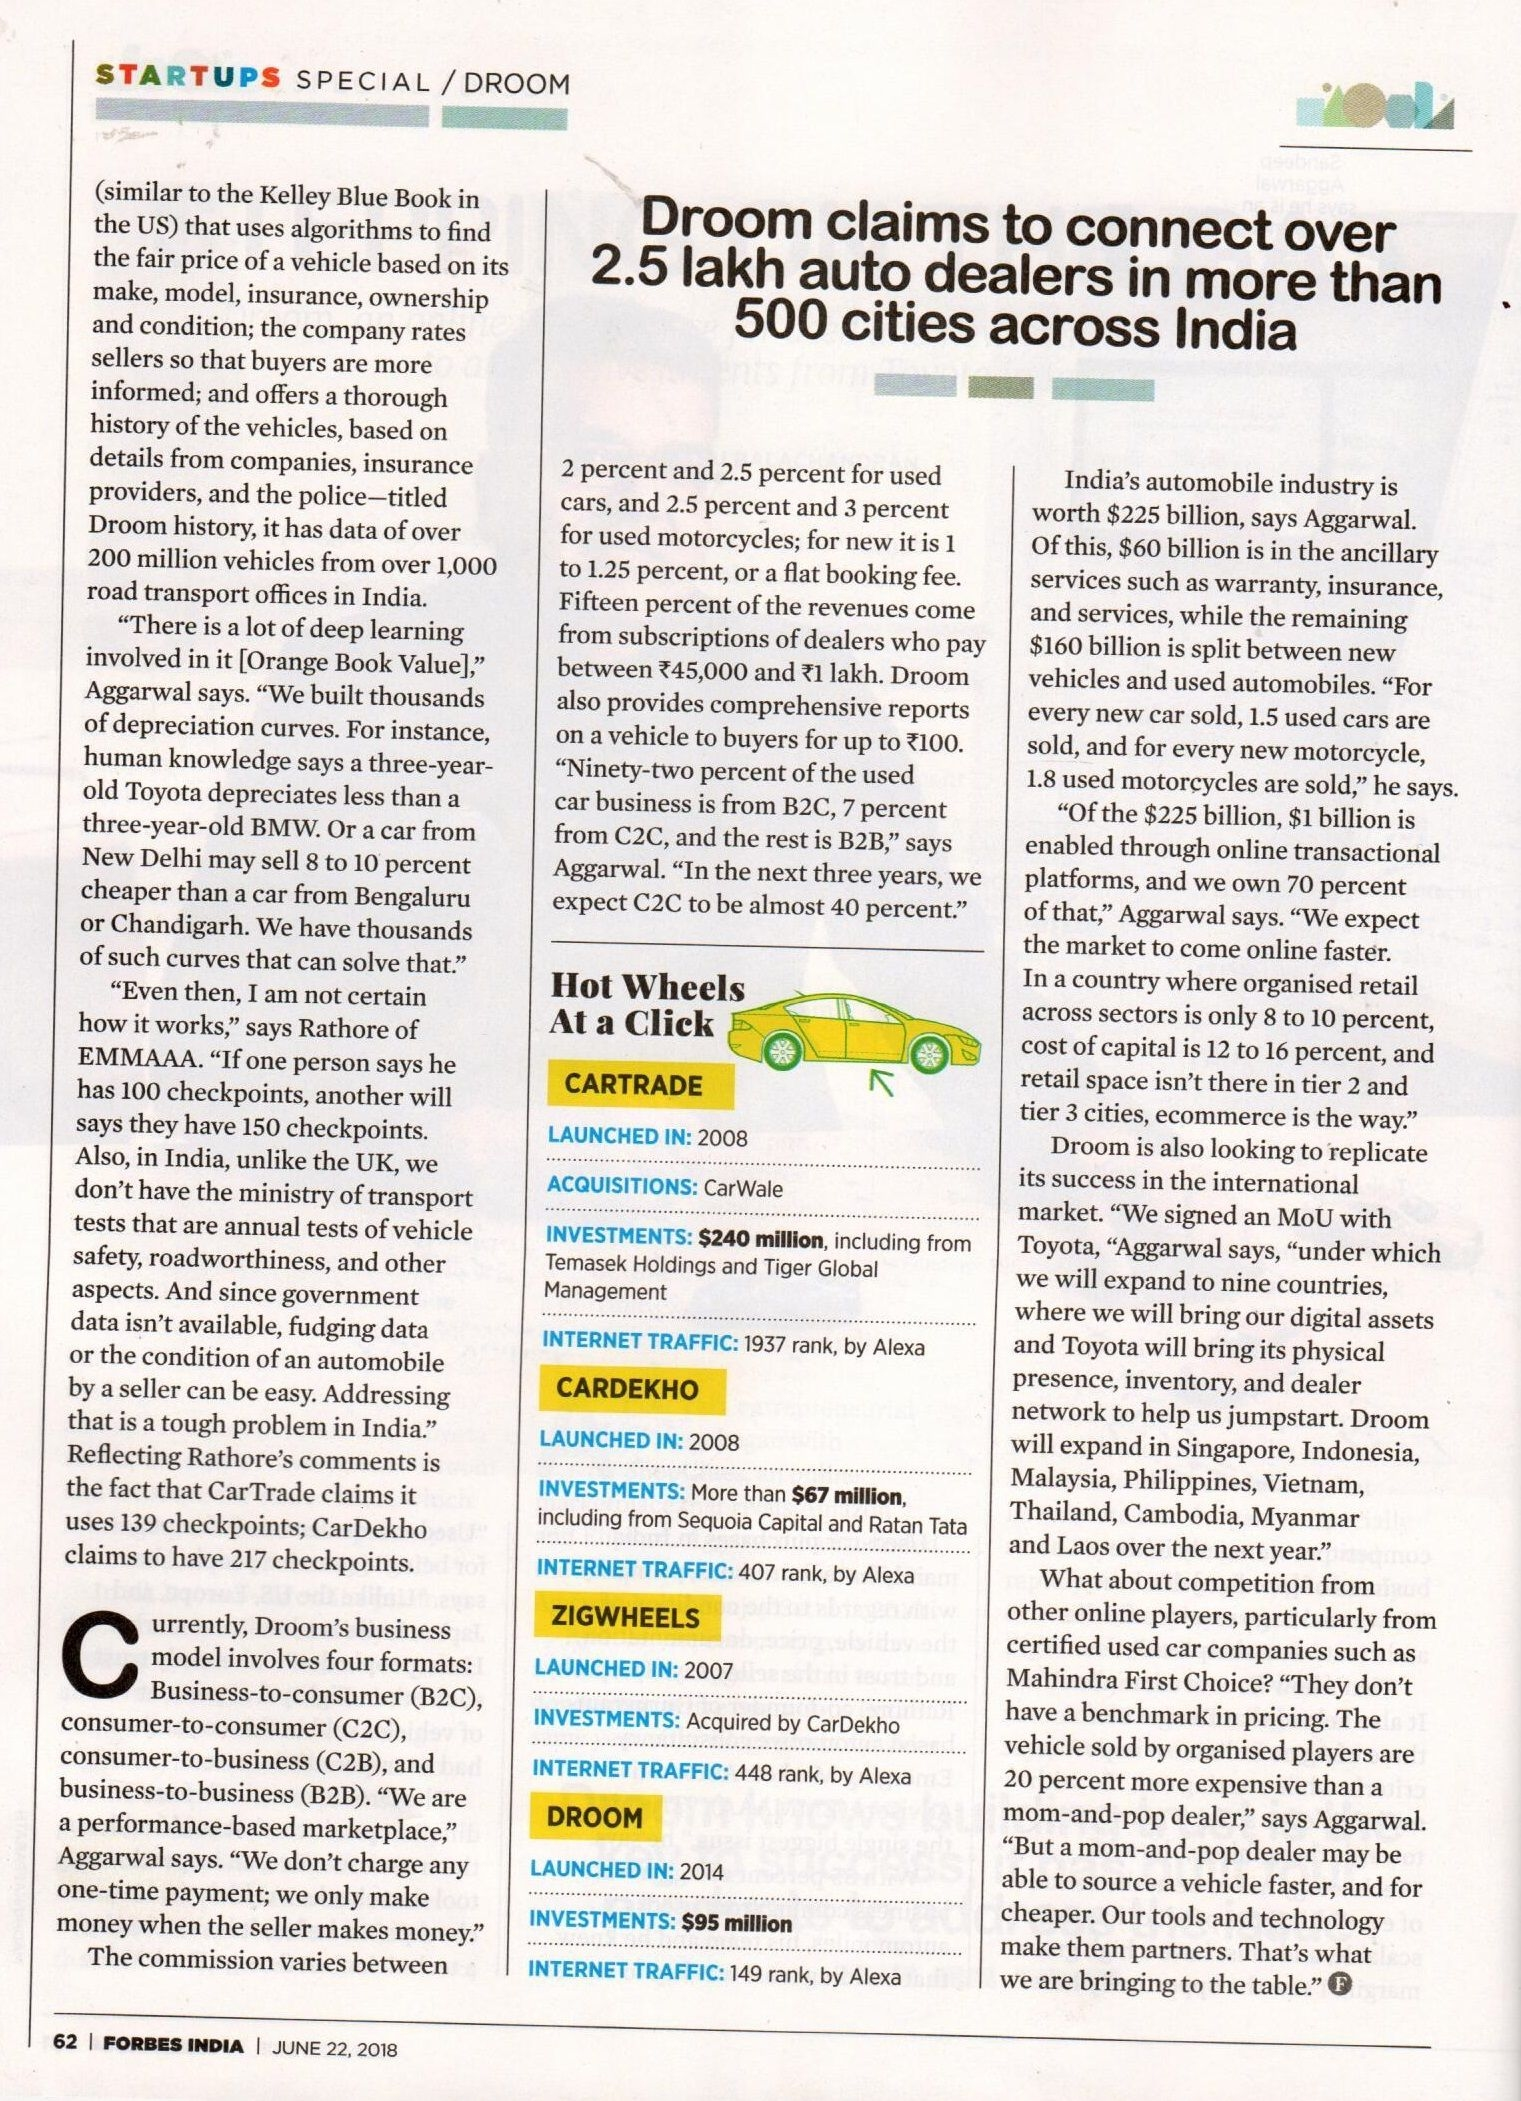 Forbes India | Droom in news